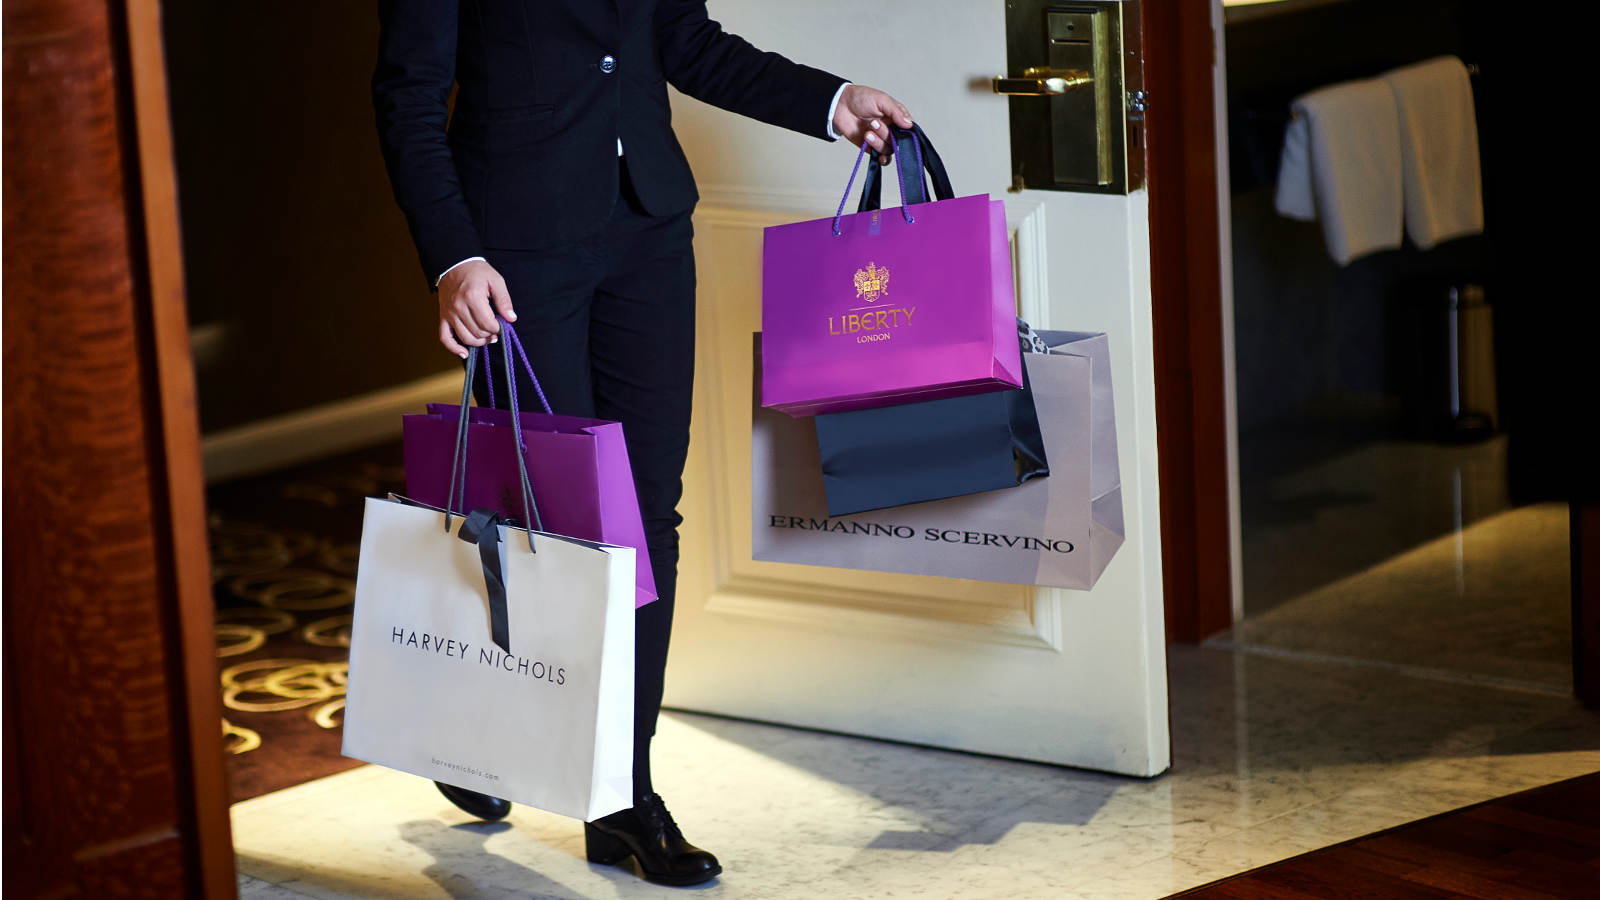 Staying at the Park Tower Knightsbridge Hotel is perfect for a day's shopping